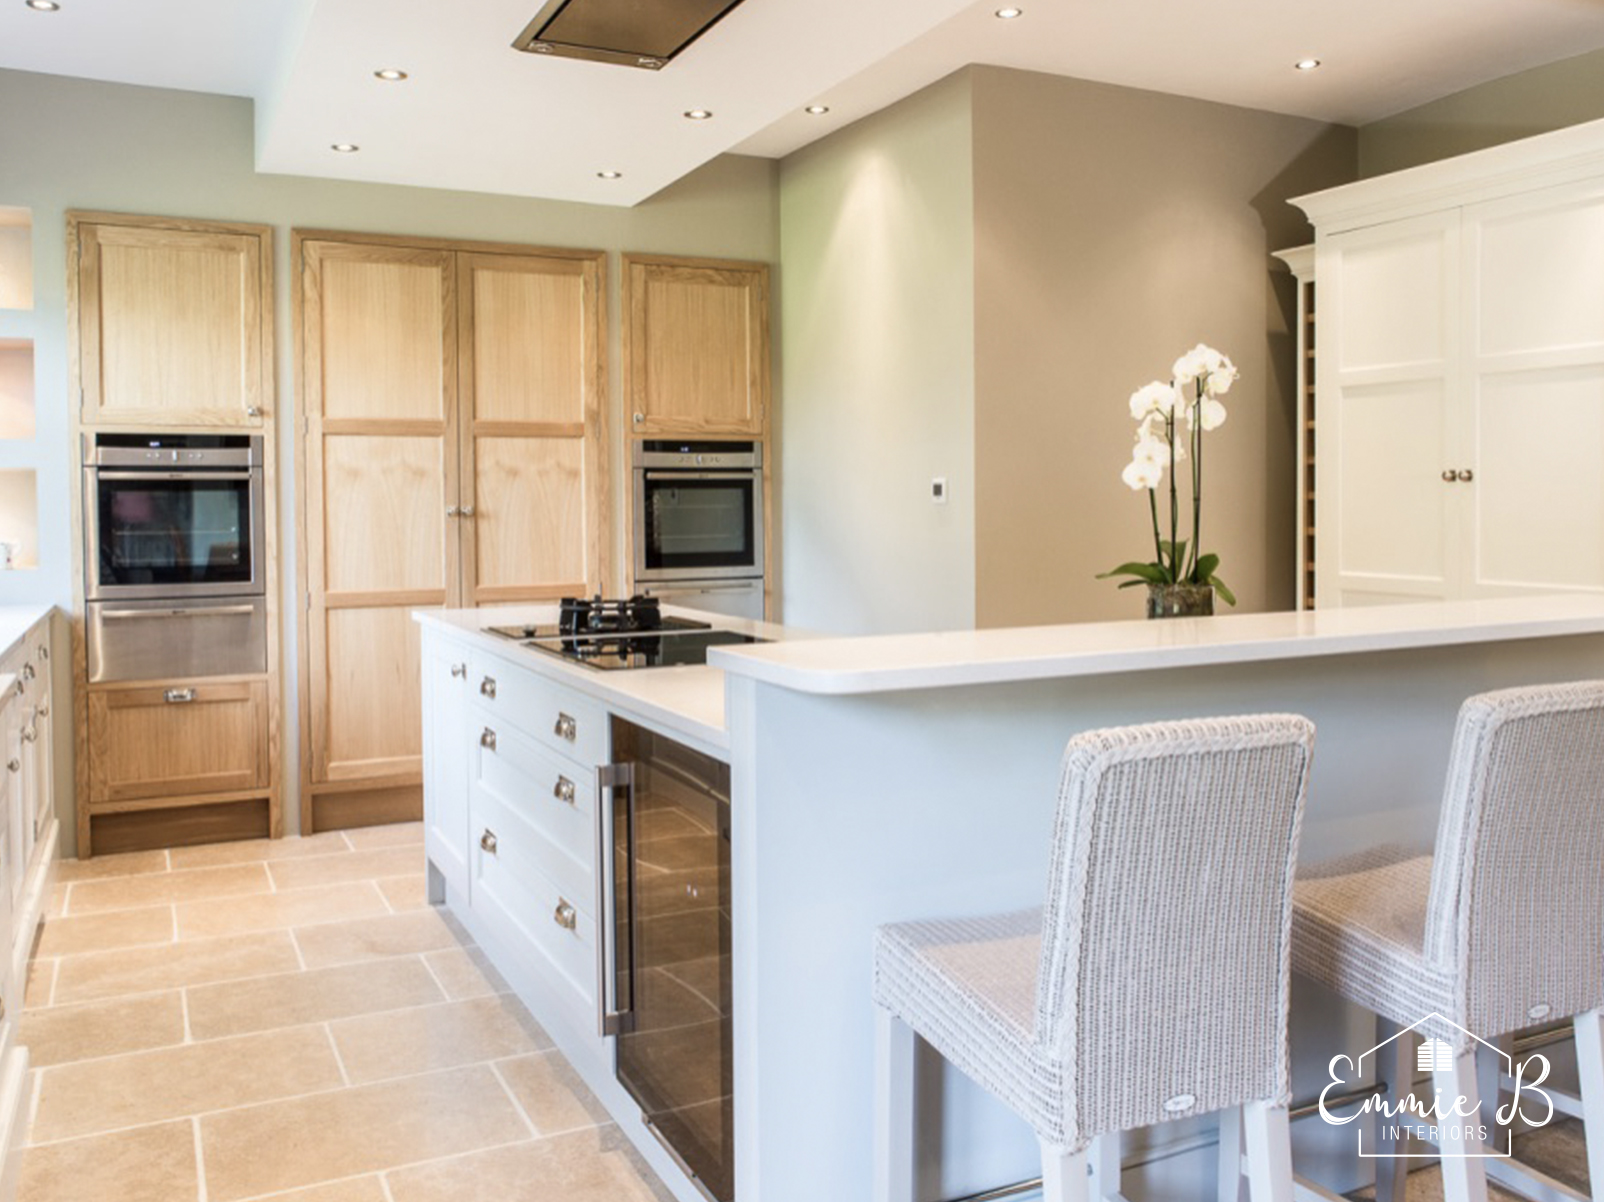 kitchen interior designer cheshire